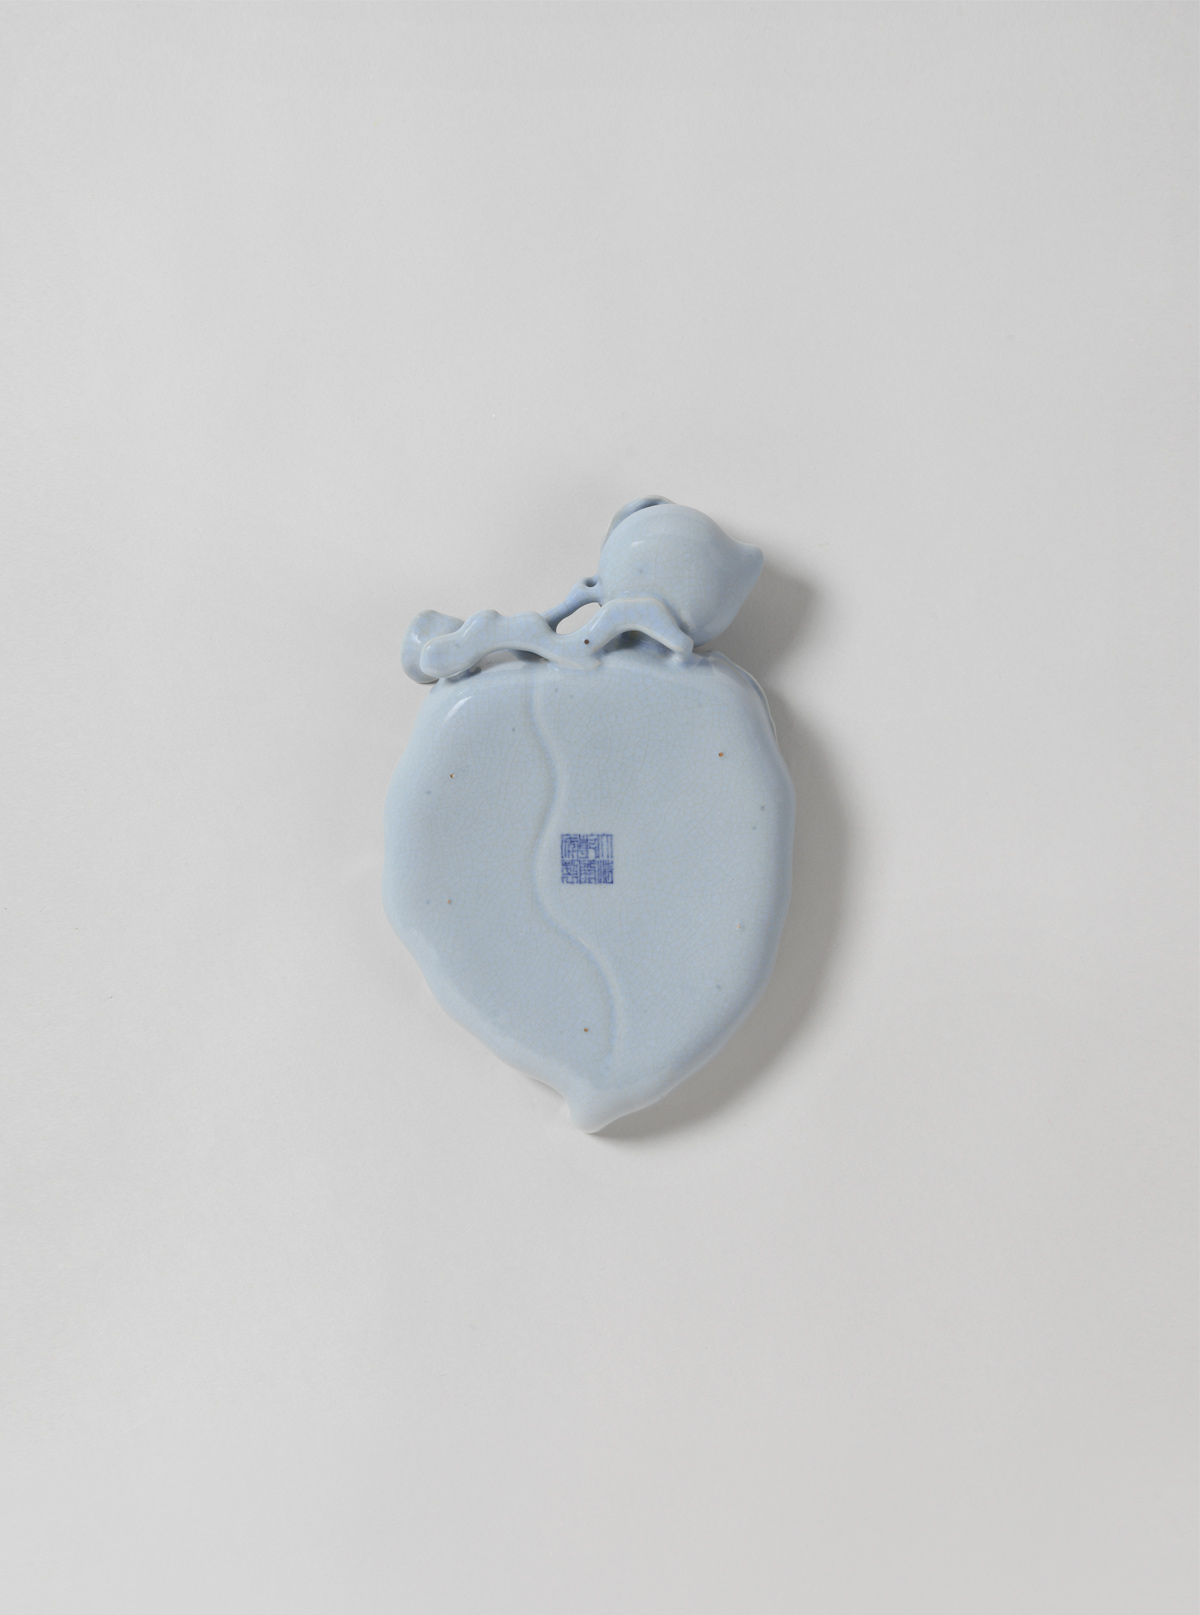 Bluish-grey Monochrome Peach-shaped Porcelain Brush Washer